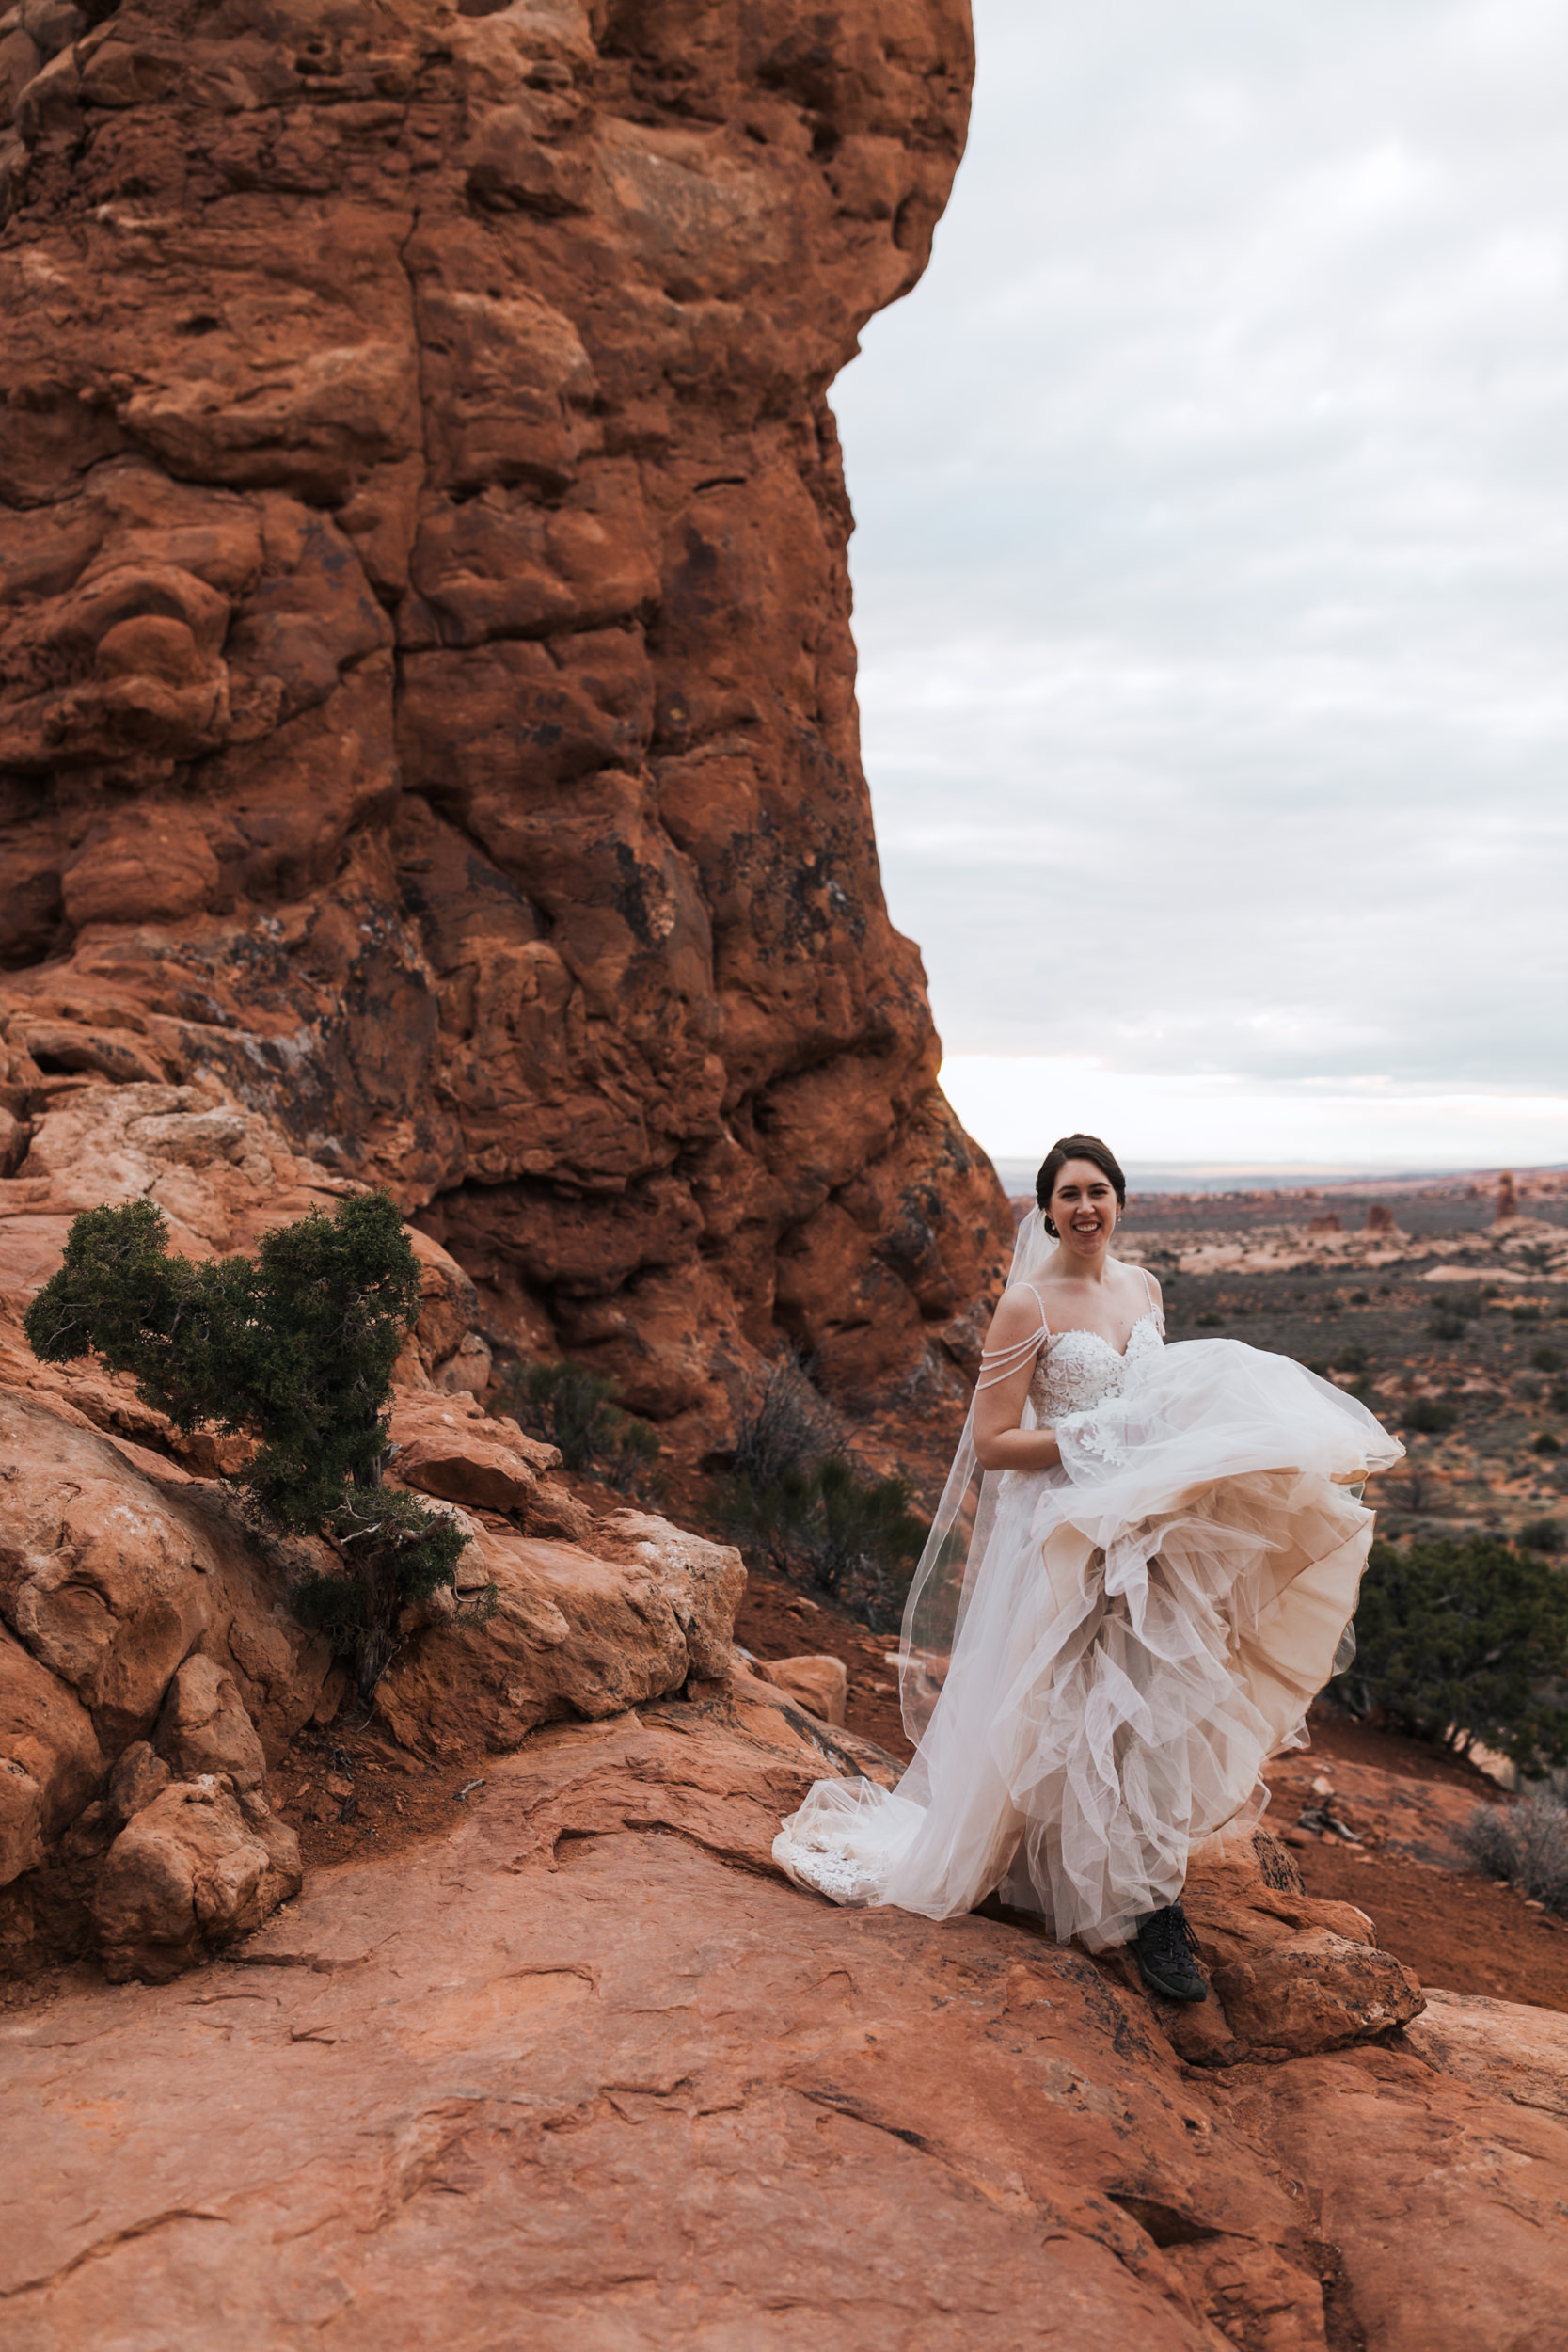 Claire loved hiking around Arches and here, shows how a bride rocks boots with a dress in the desert.